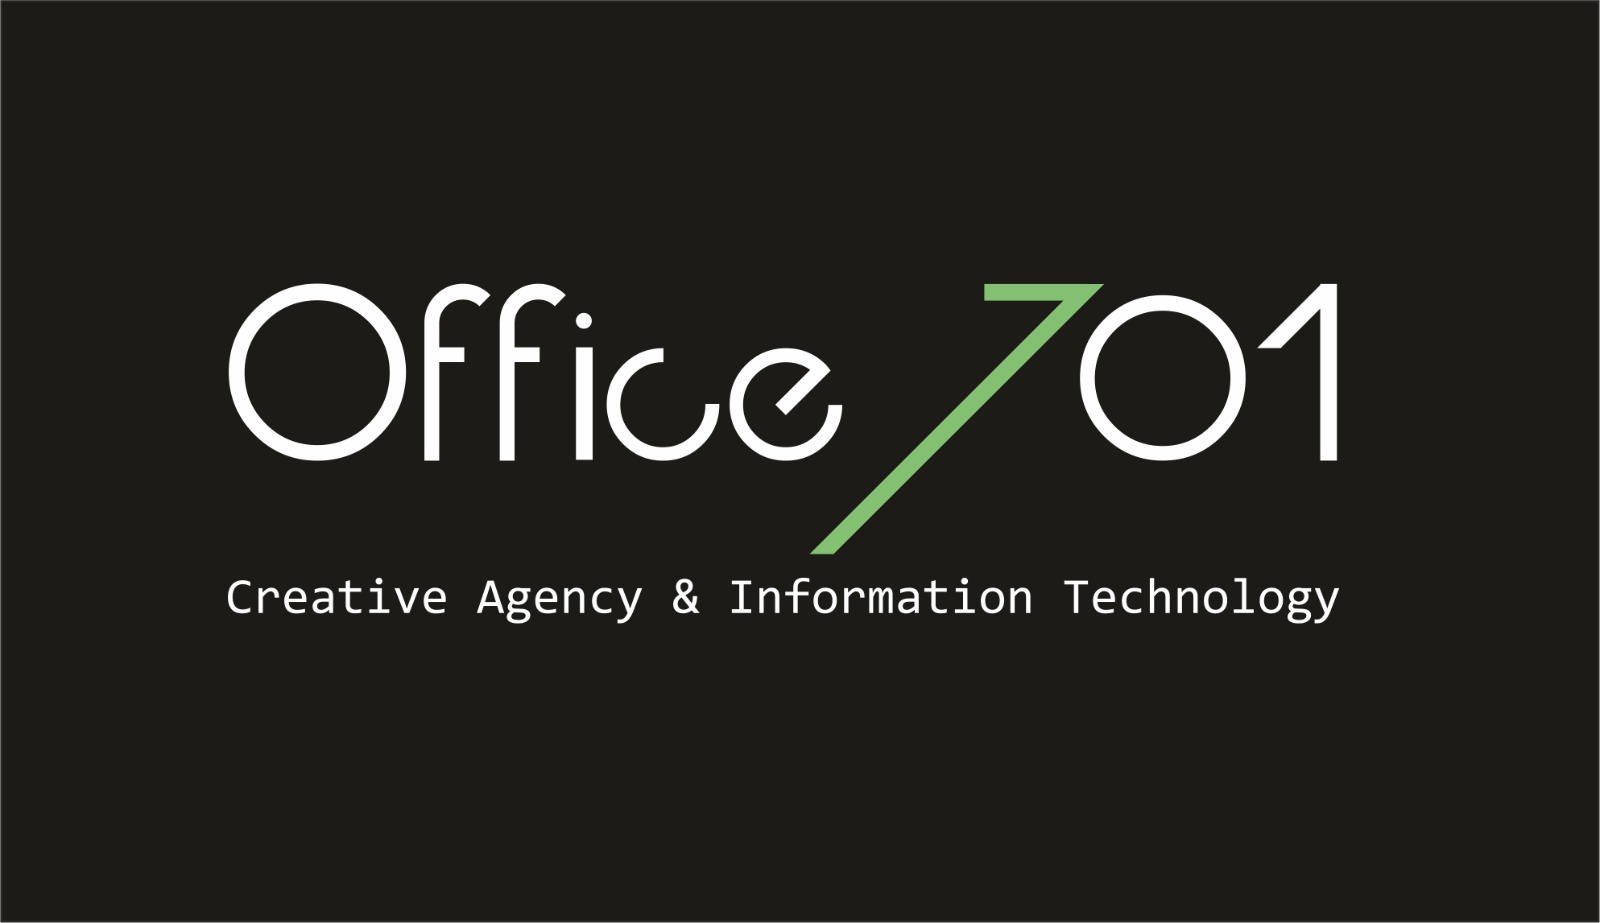 Office701 Creative Agency & Information Technology Logo